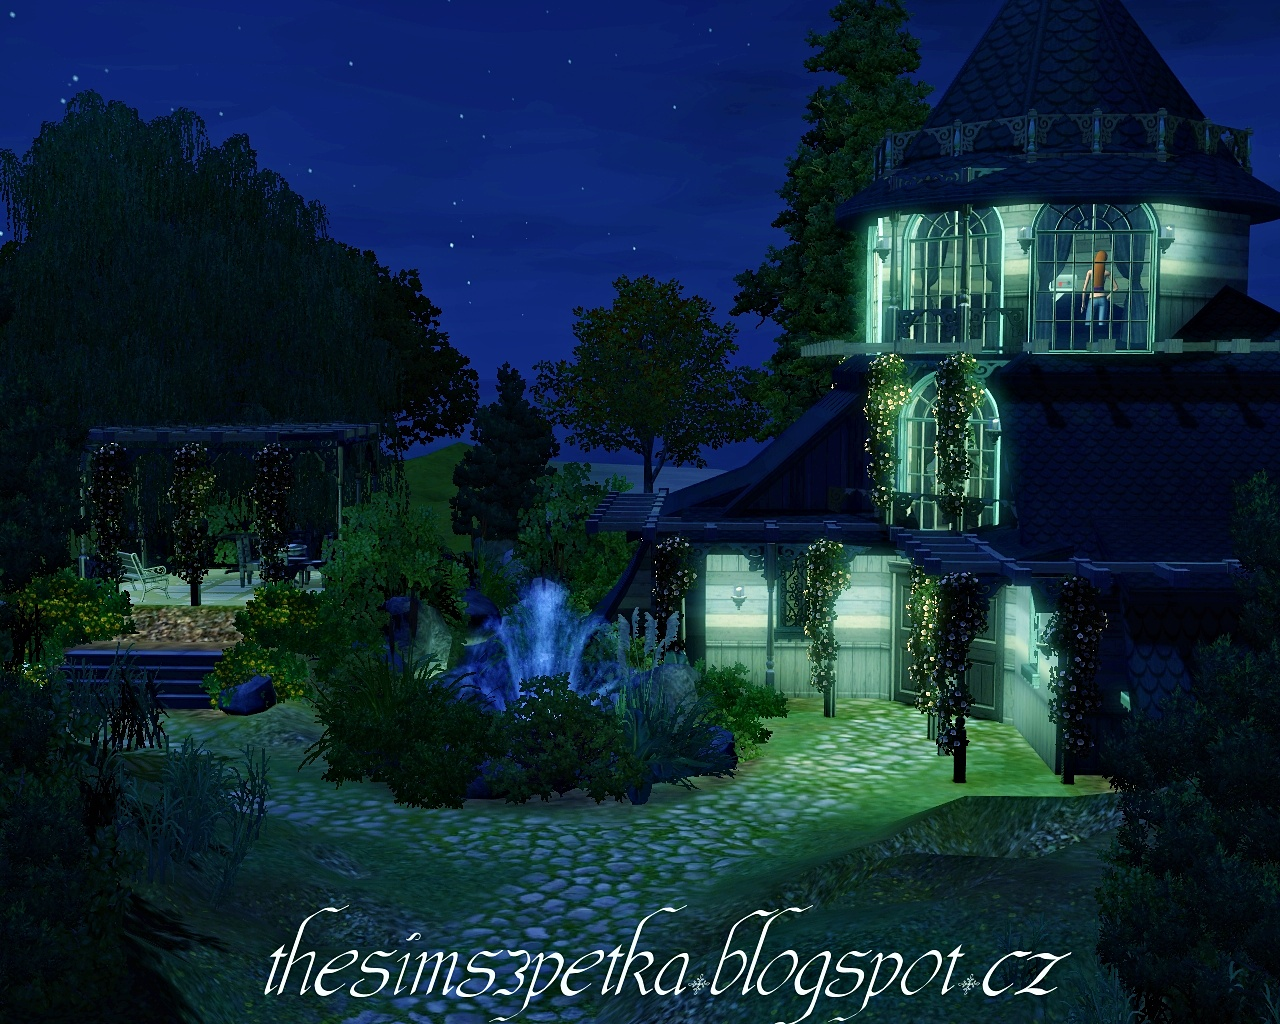 Sommeil Foret - house by Petka